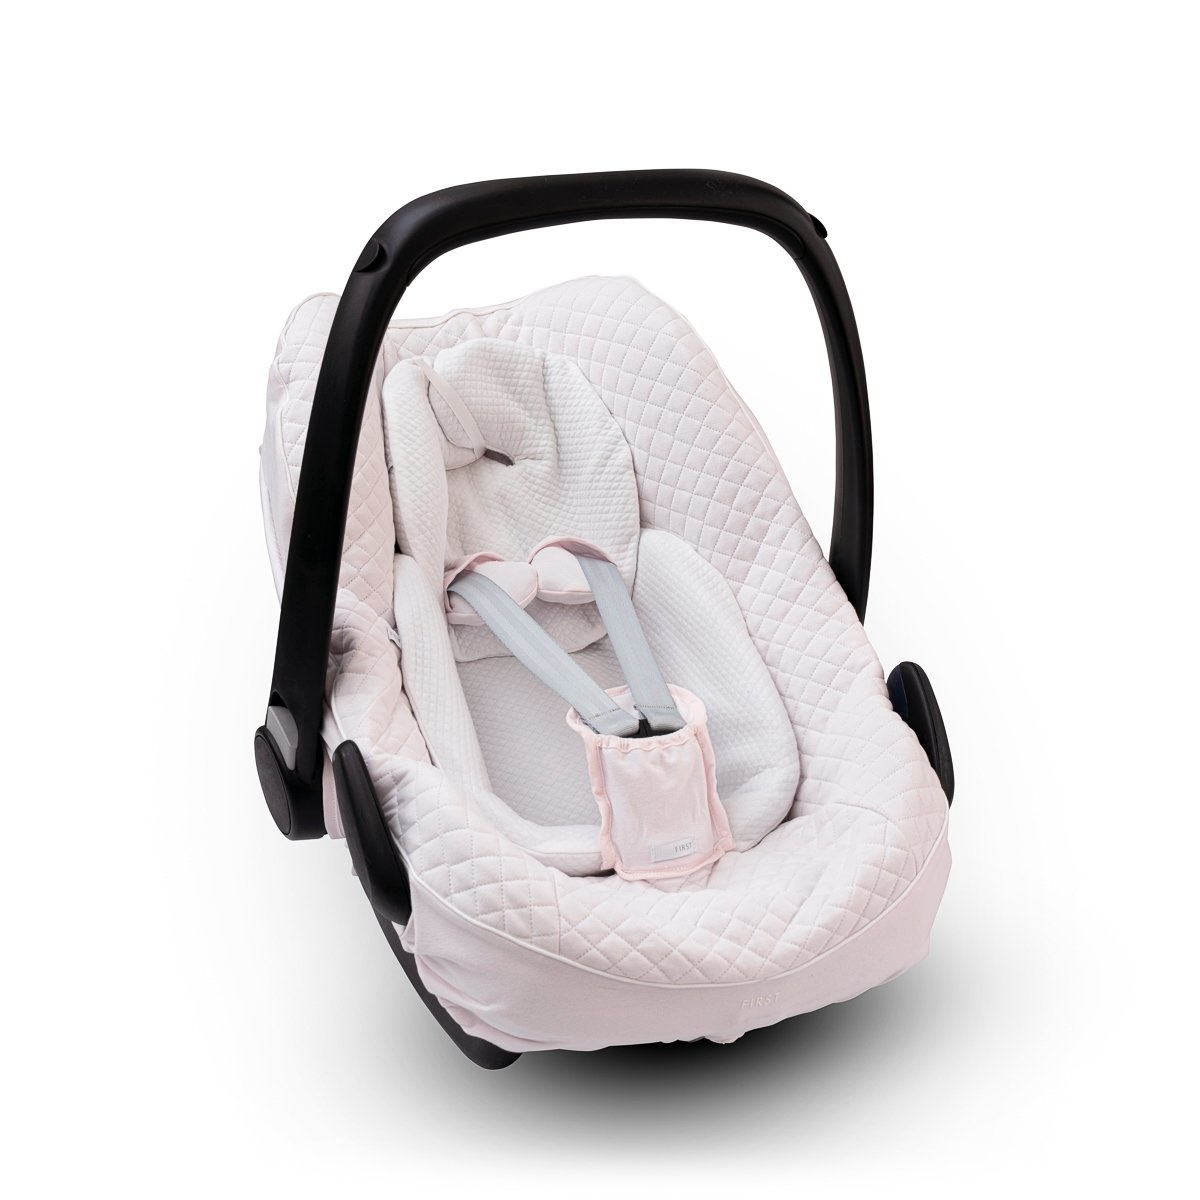 Hoes maxi cosi pebble pro First-1